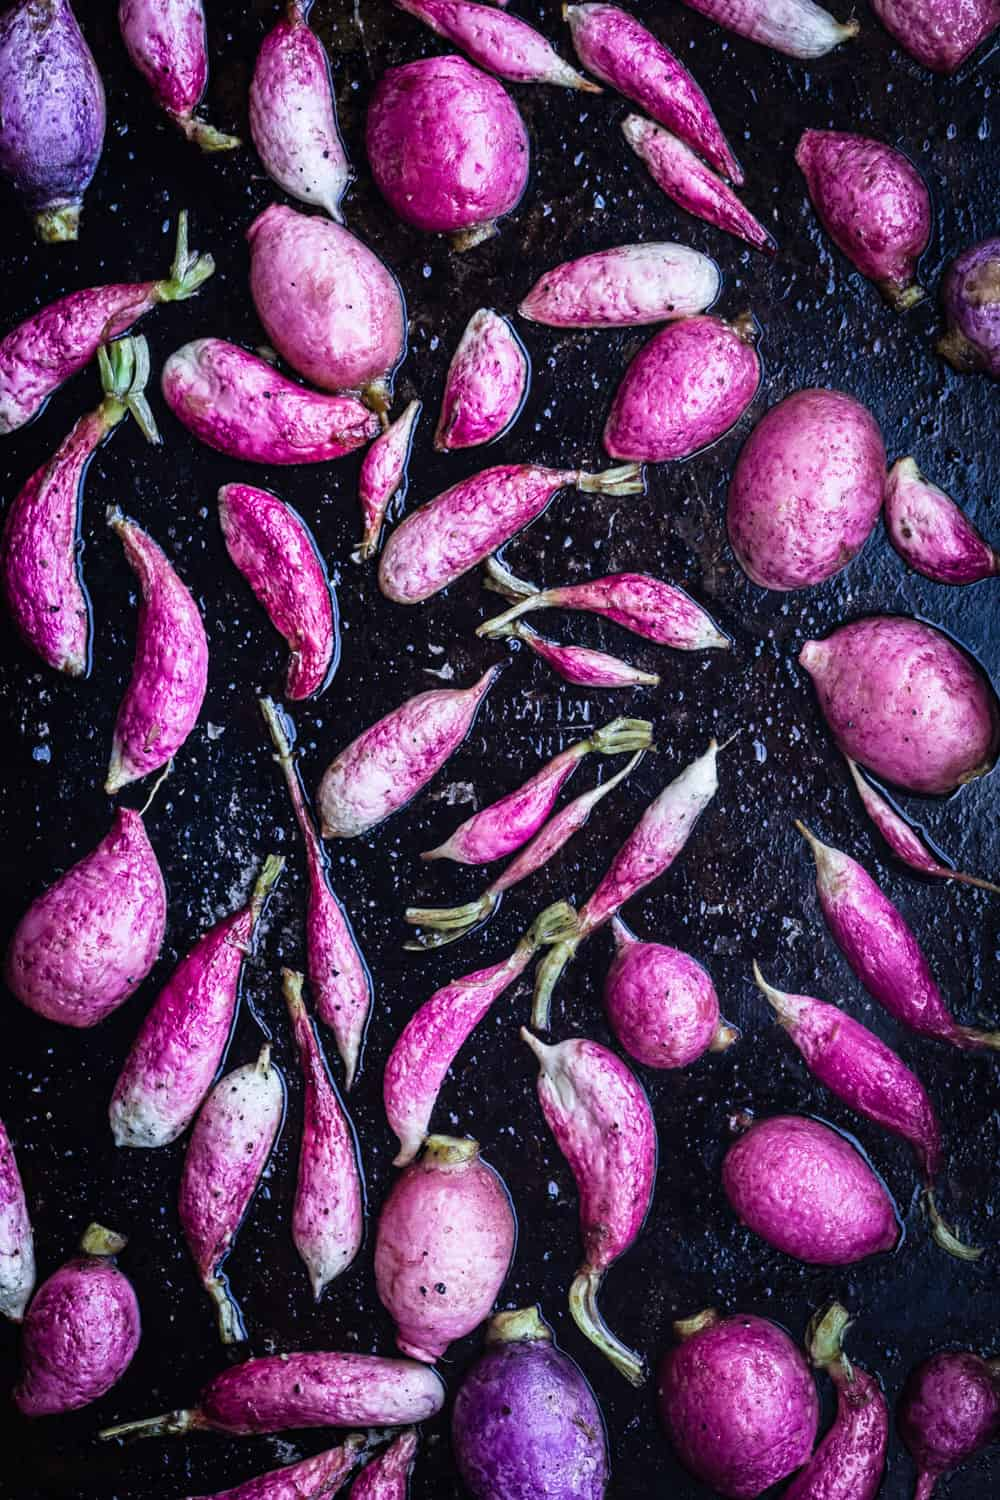 Up-close pink and French breakfast radishes, cut in half, on a baking sheet, cut-side down, post-oven